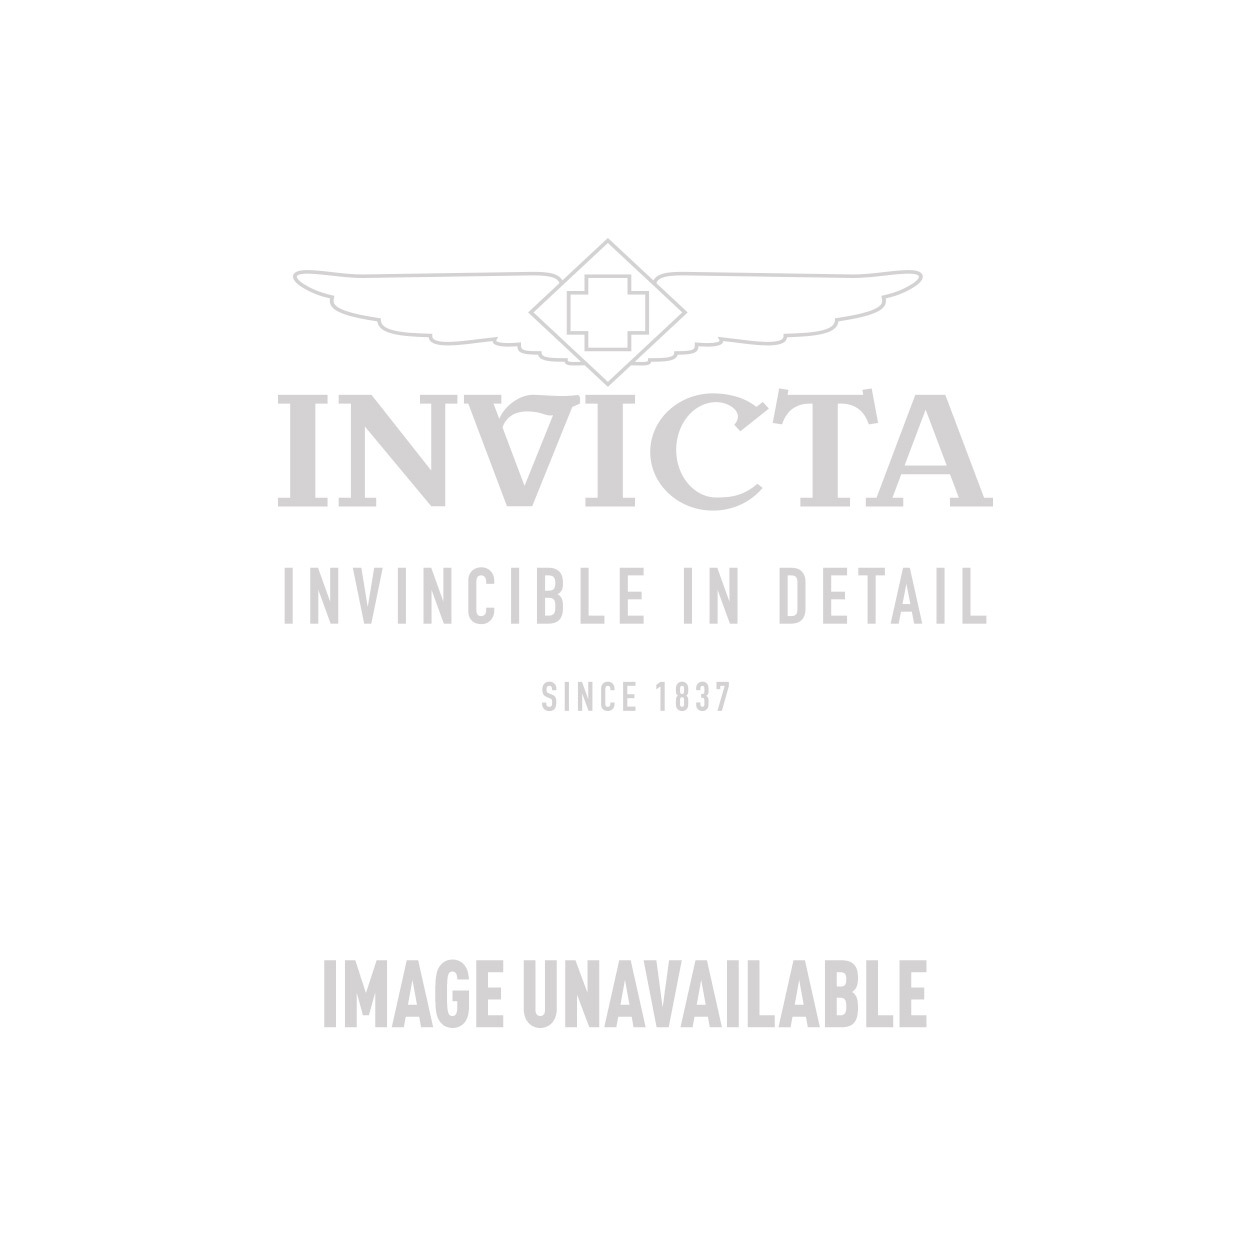 Invicta S. Coifman Swiss Made Quartz Watch - Stainless Steel case Stainless Steel band - Model SC0209